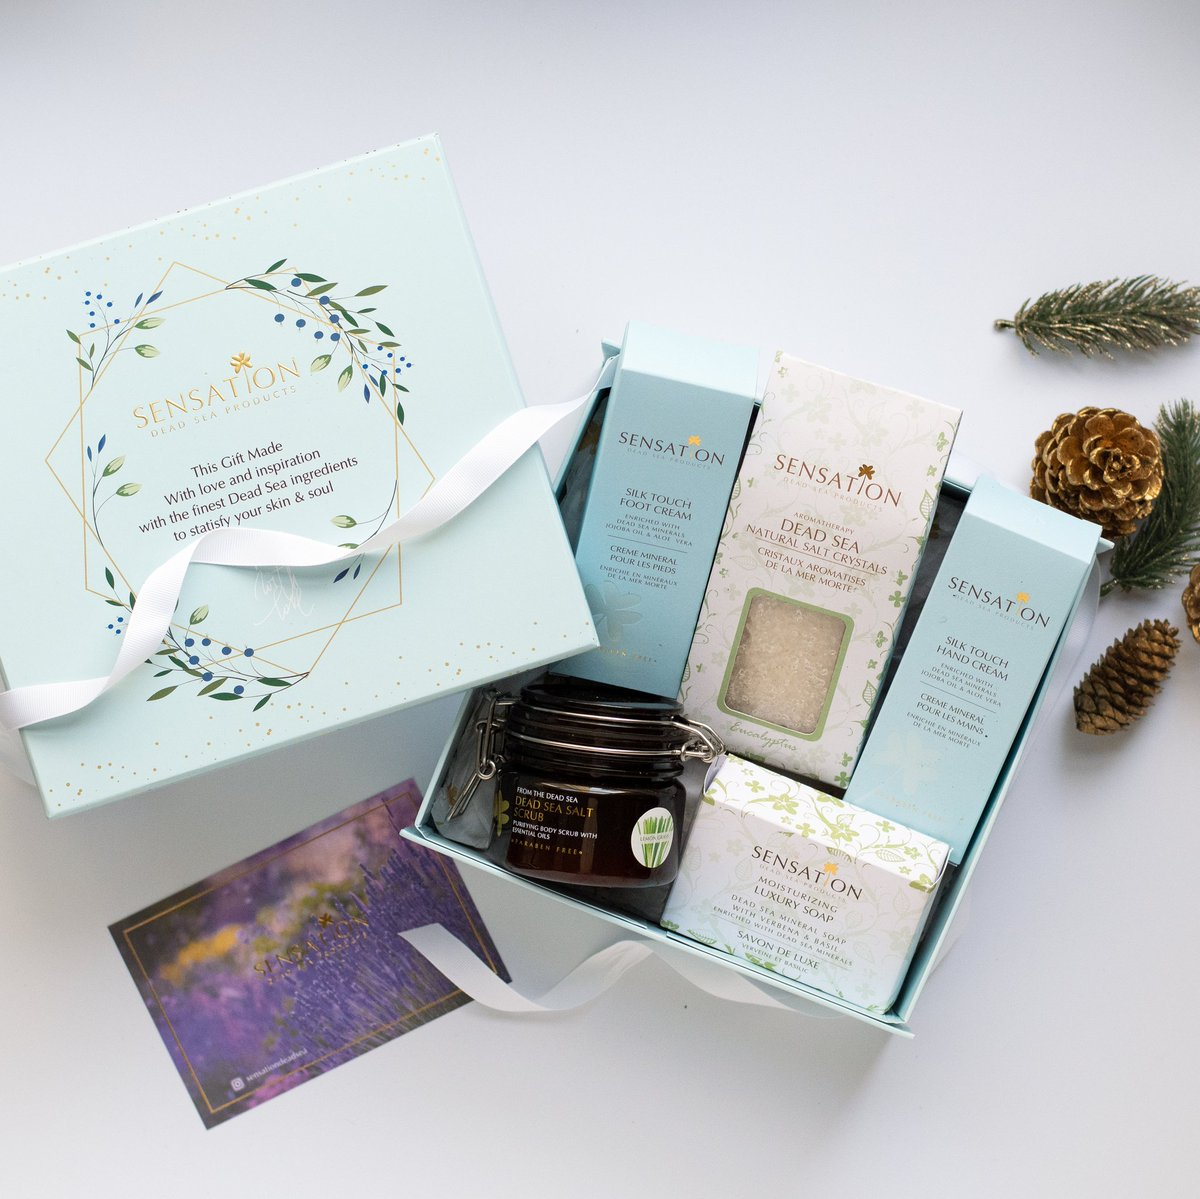 Customize the perfect Christmas gift box for your loved ones with Sensation! #sensationdeadsea #jordan #beauty #deadsea #deadseajordan #deadseasalt #deadseaspa #deadseaproducts #deadseaminerals #deadseasalts #christmasgifts #christmasgiftsideas #christmasgift #giftideaspic.twitter.com/up1cEzqdIA